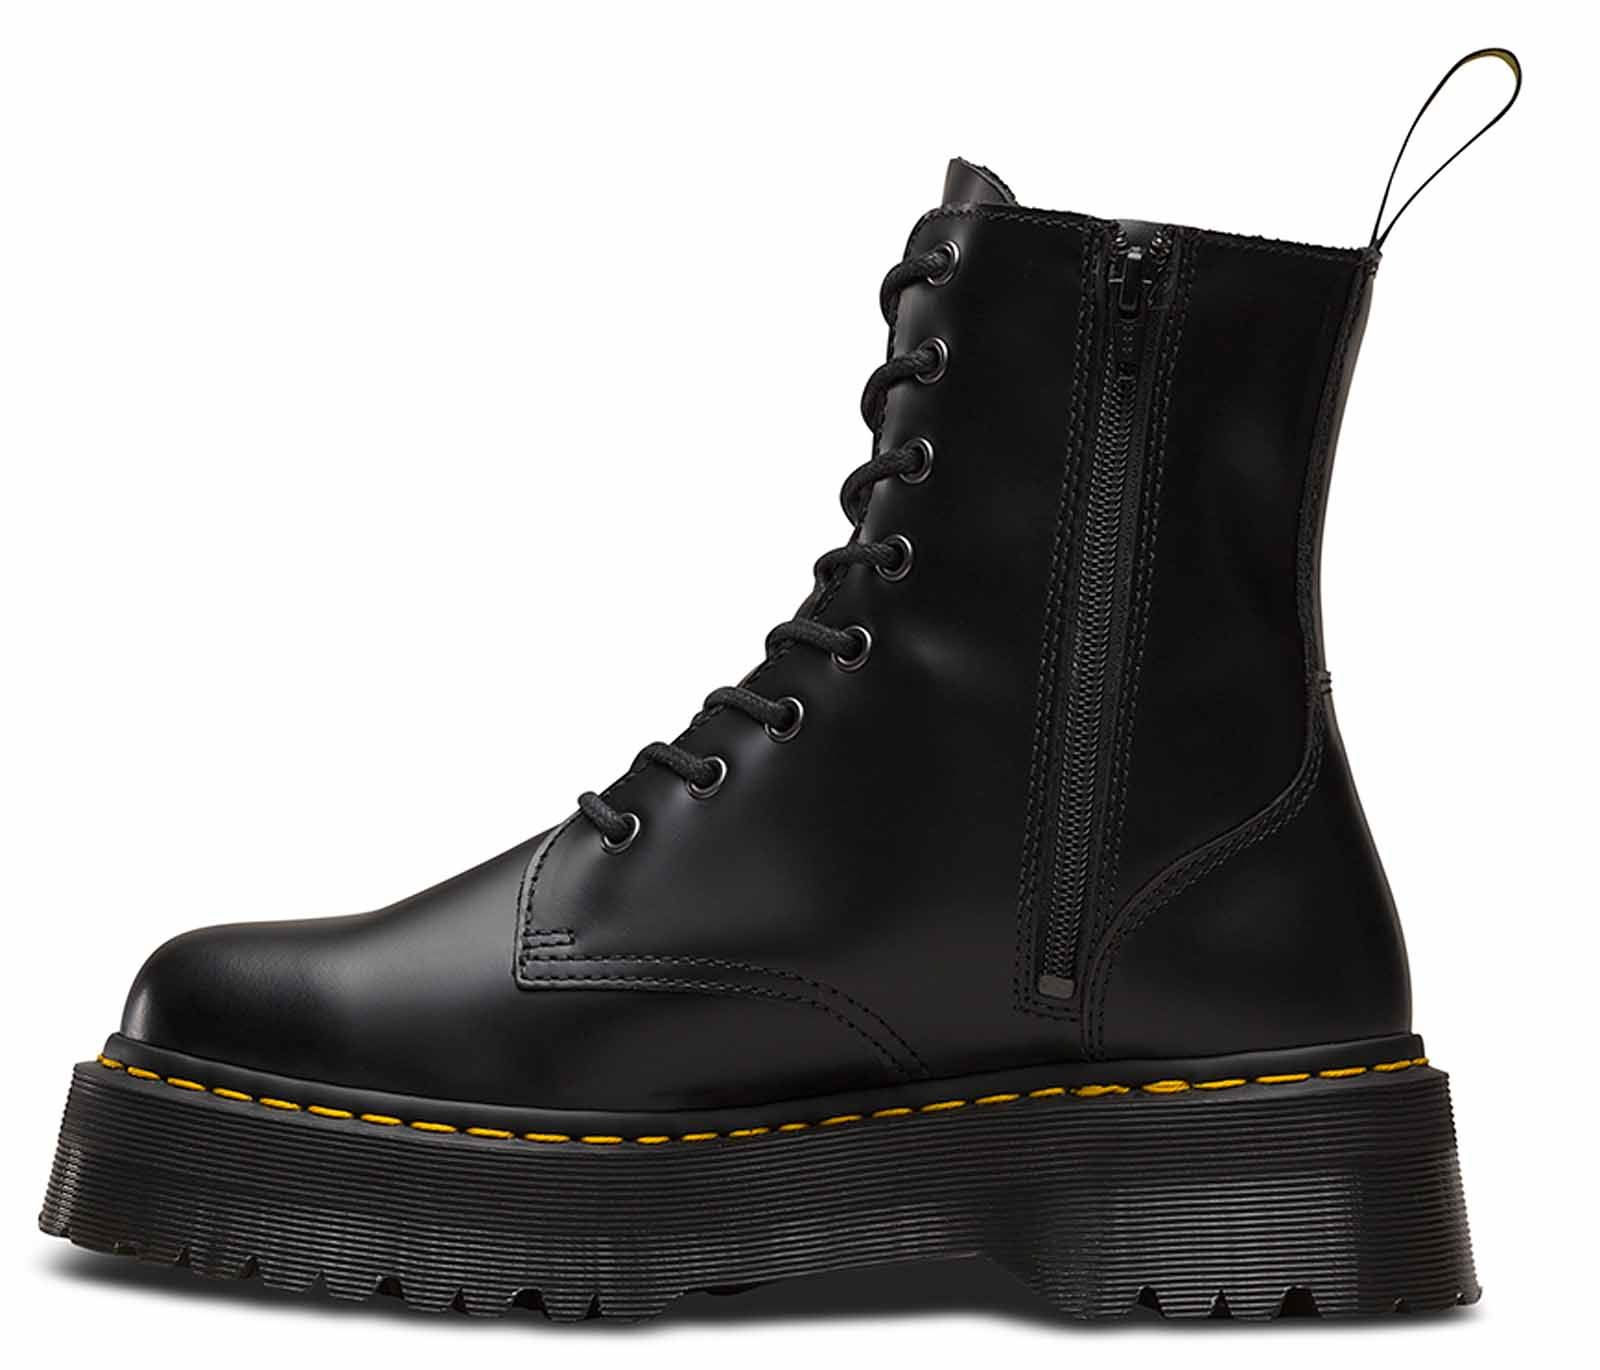 Jadon Flatform Boots - Black polished smoot Dr. Martens